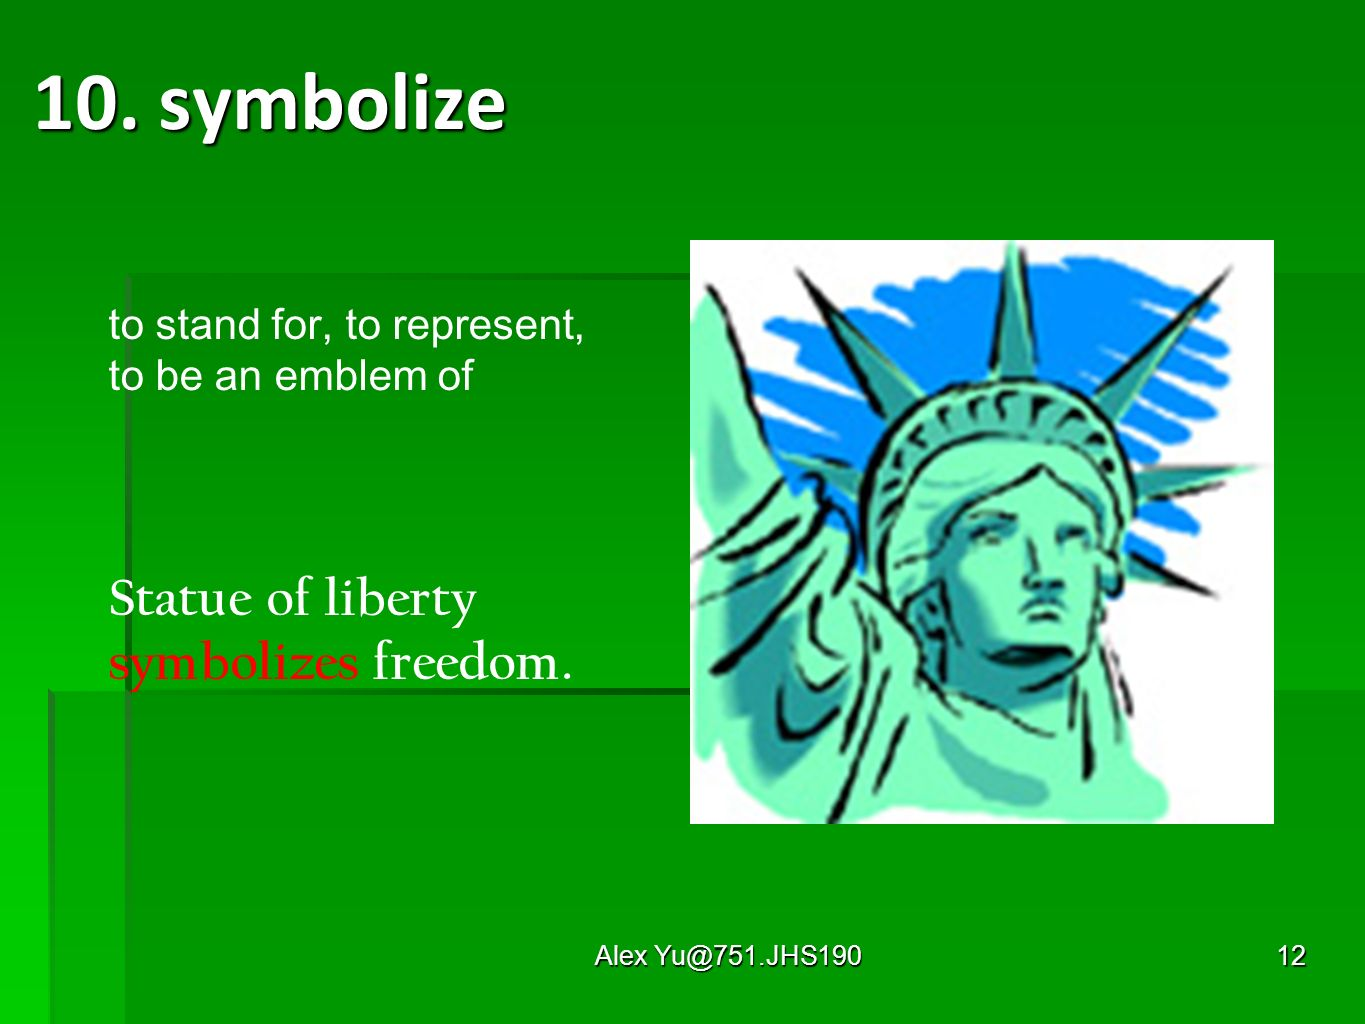 Alex Yu@751.JHS19012 10. symbolize to stand for, to represent, to be an emblem of Statue of liberty symbolizes freedom.